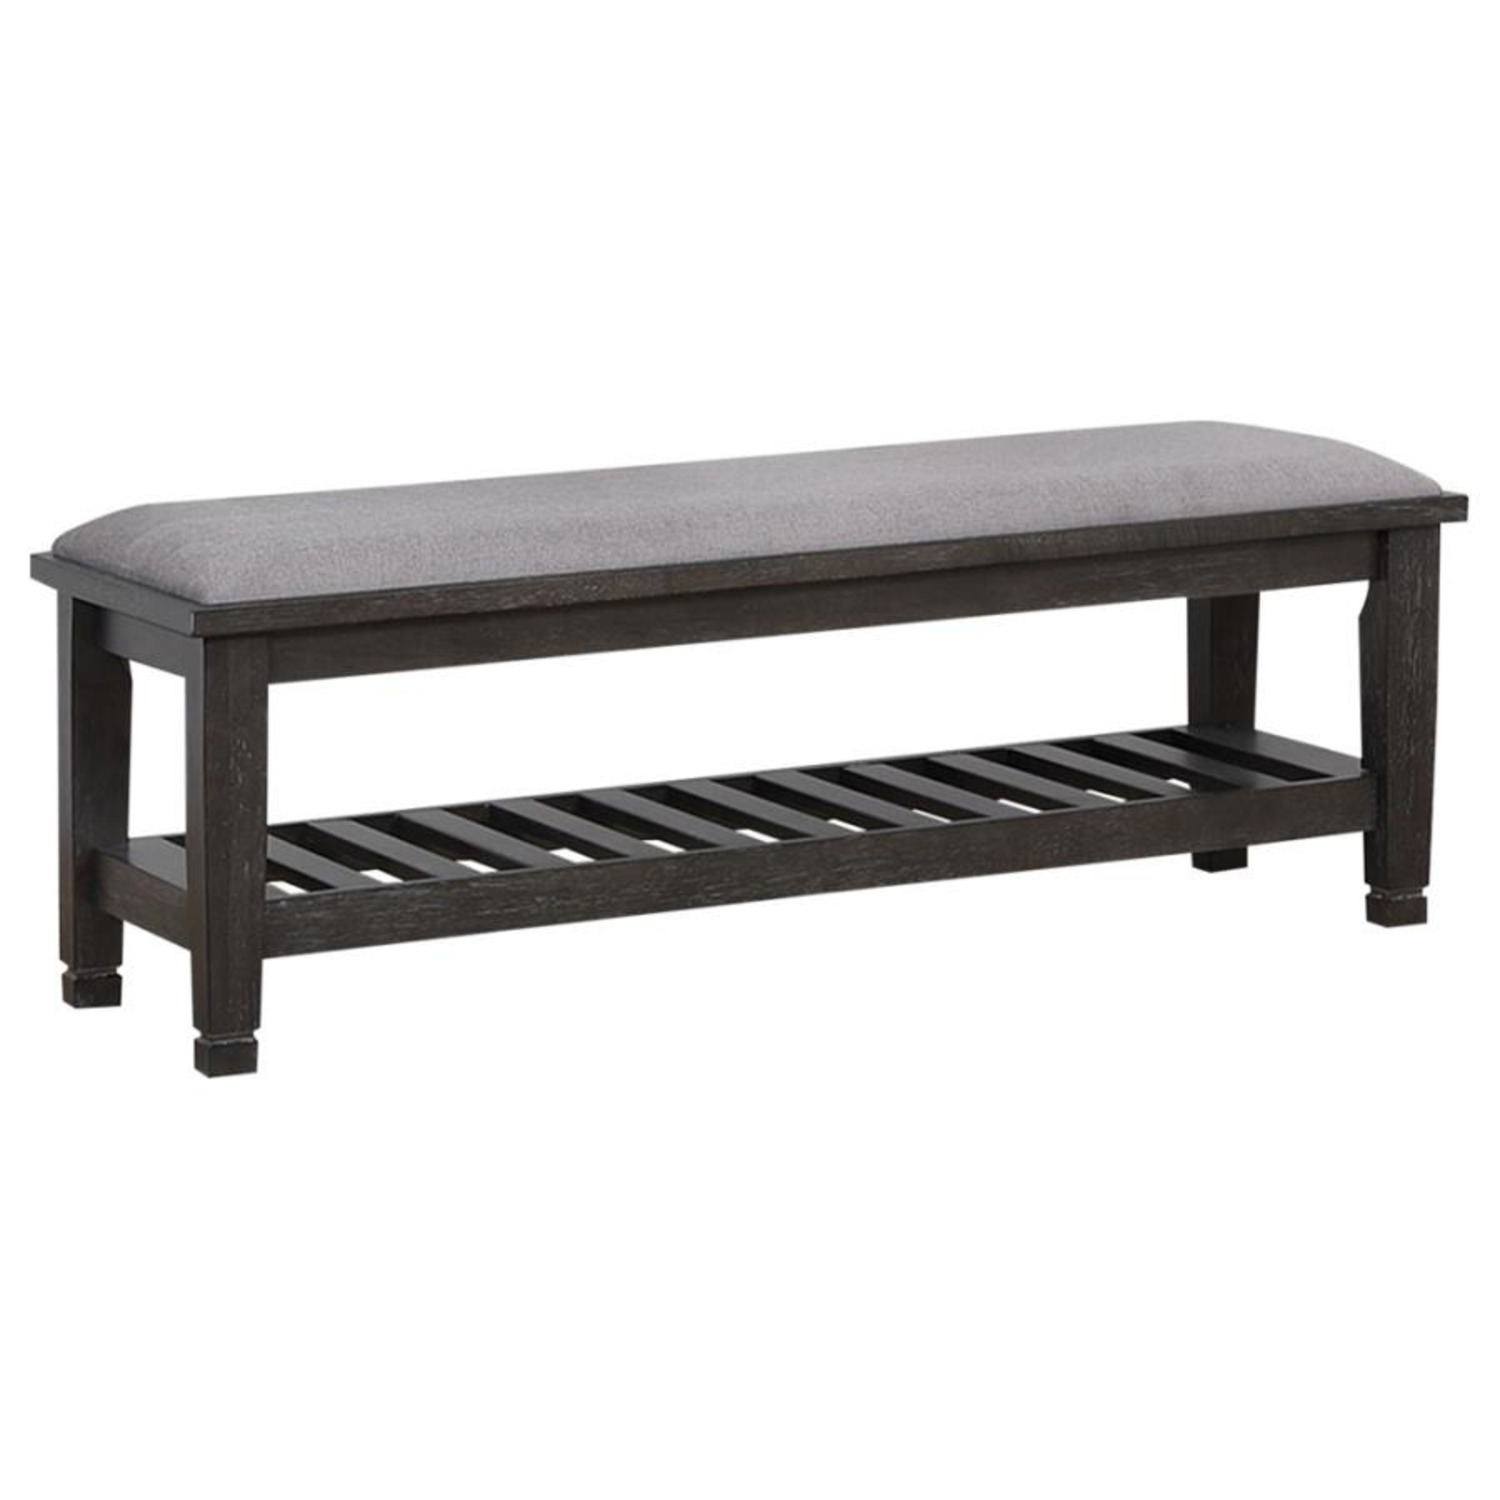 Bench In Weathered Sage Wood Finish - image-1